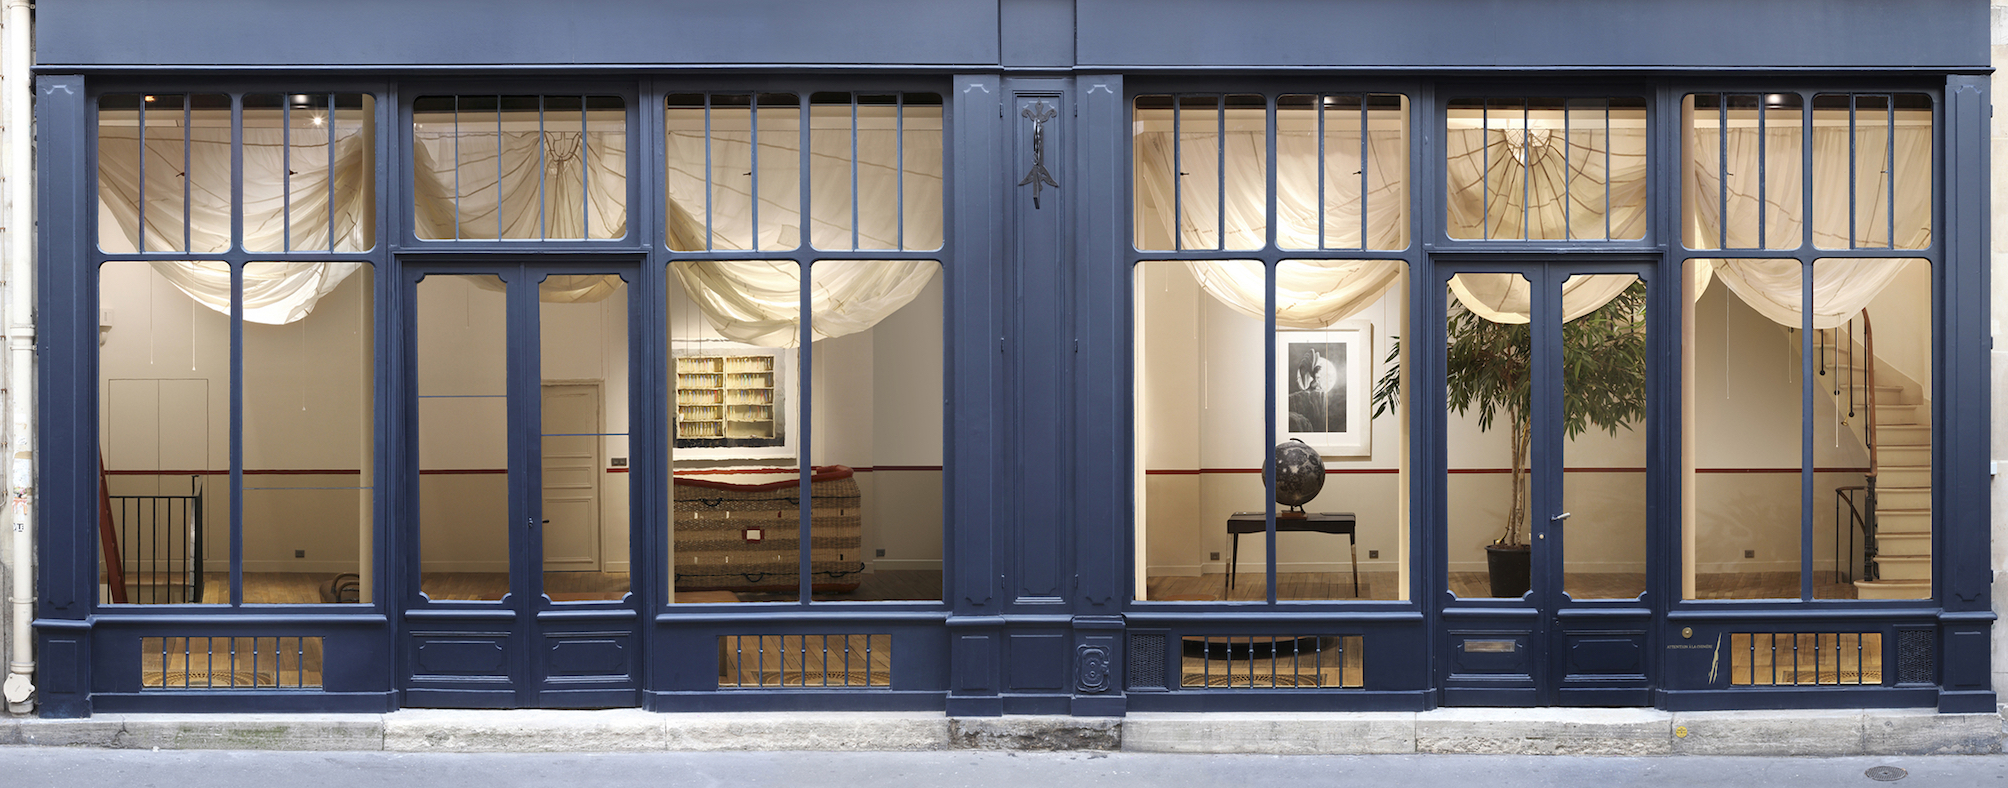 Meubles Hay France The Best Concept Stores In Paris For Interior Design Lovers